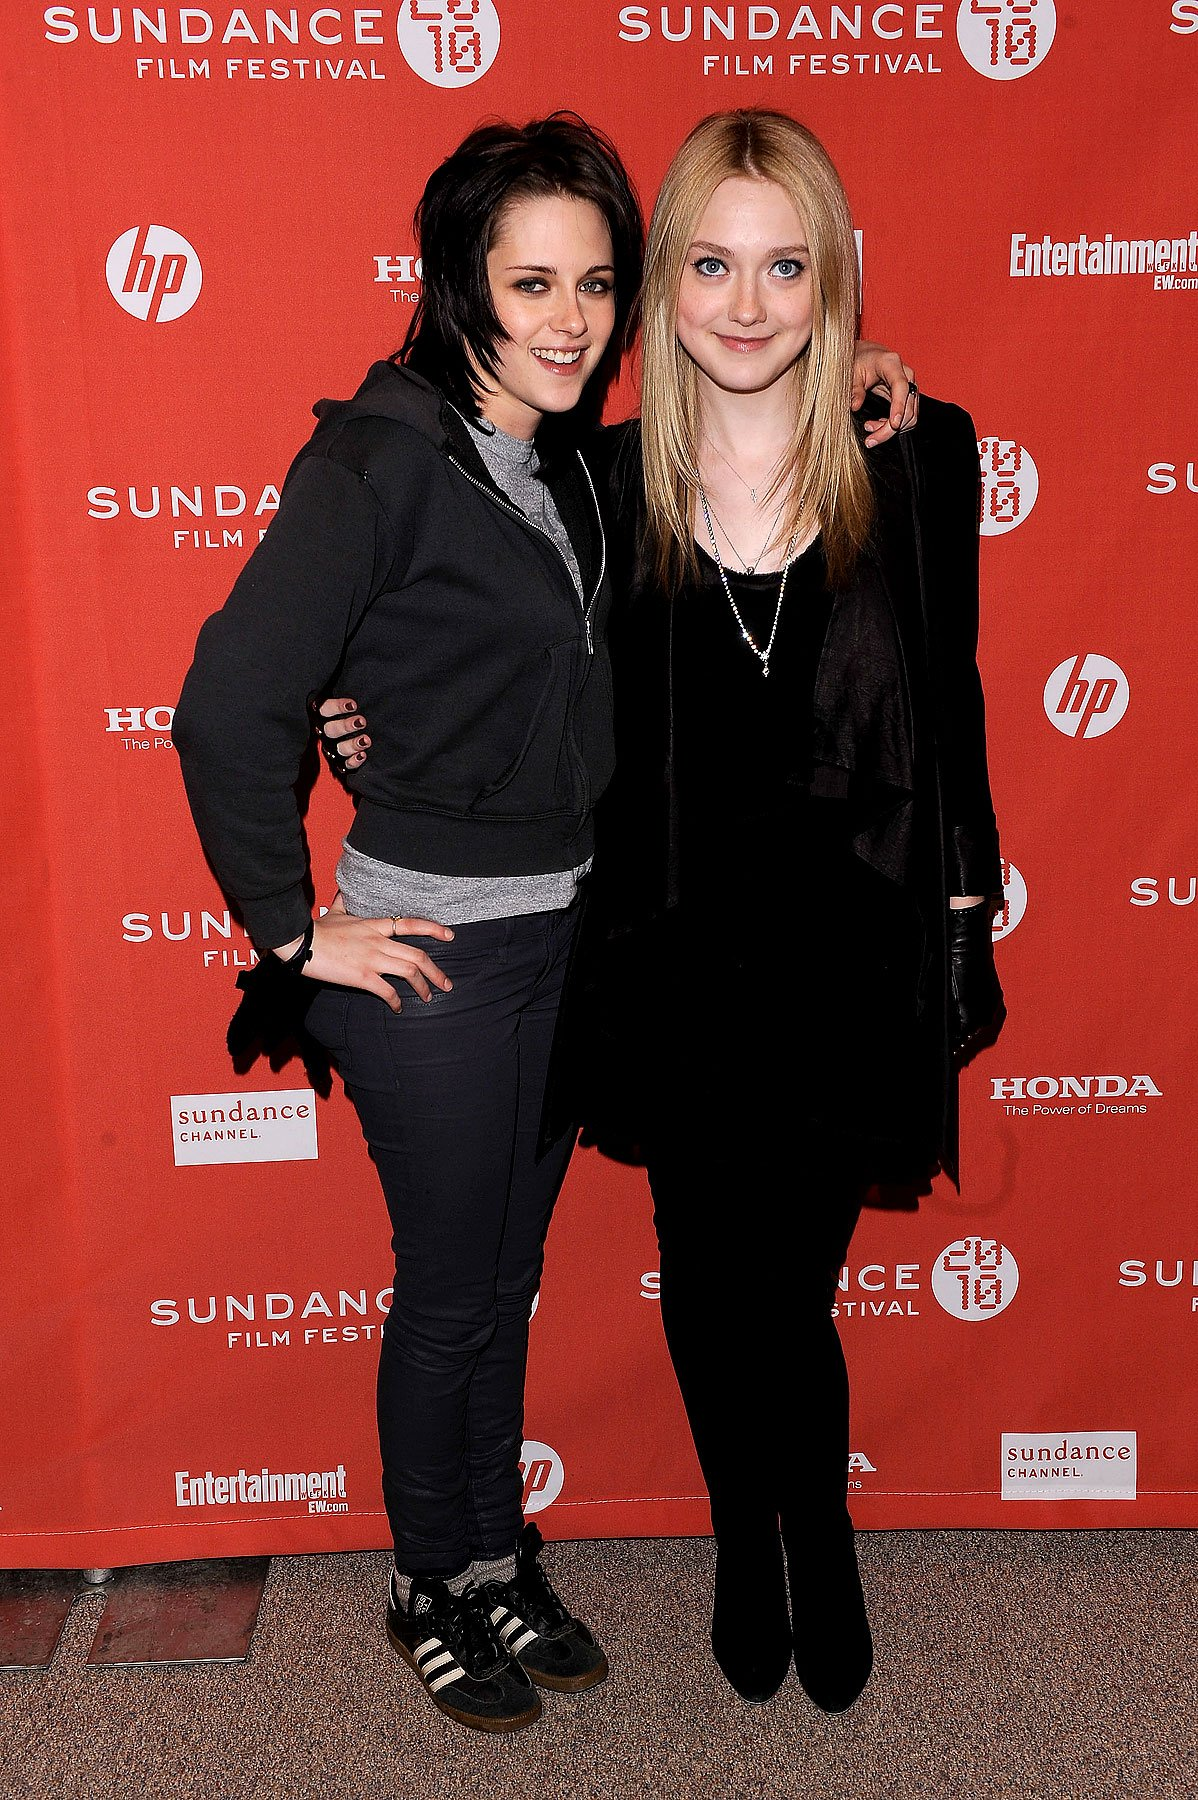 'The Runaways' Premieres at Sundance (PHOTOS)